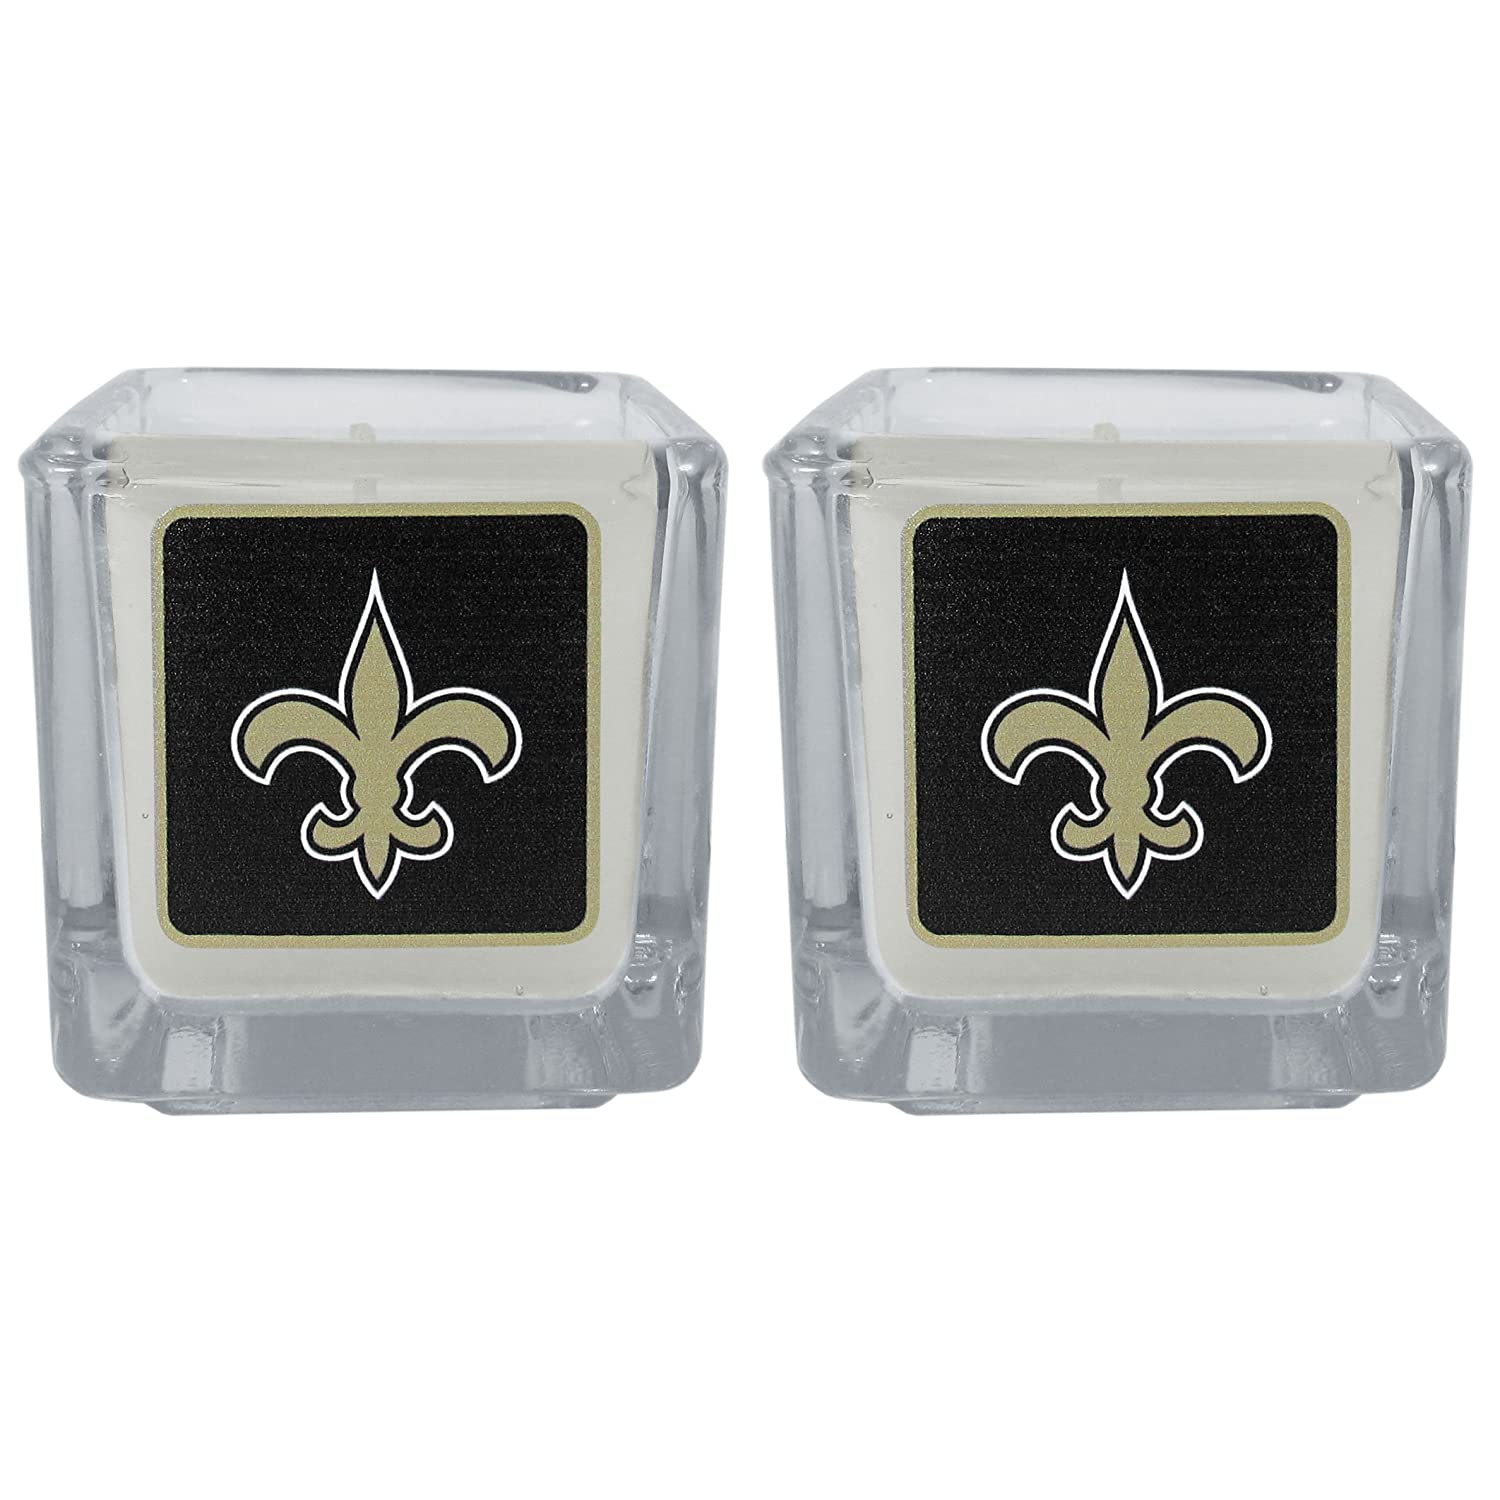 Siskiyou NFL Unisex Graphics Candle Set